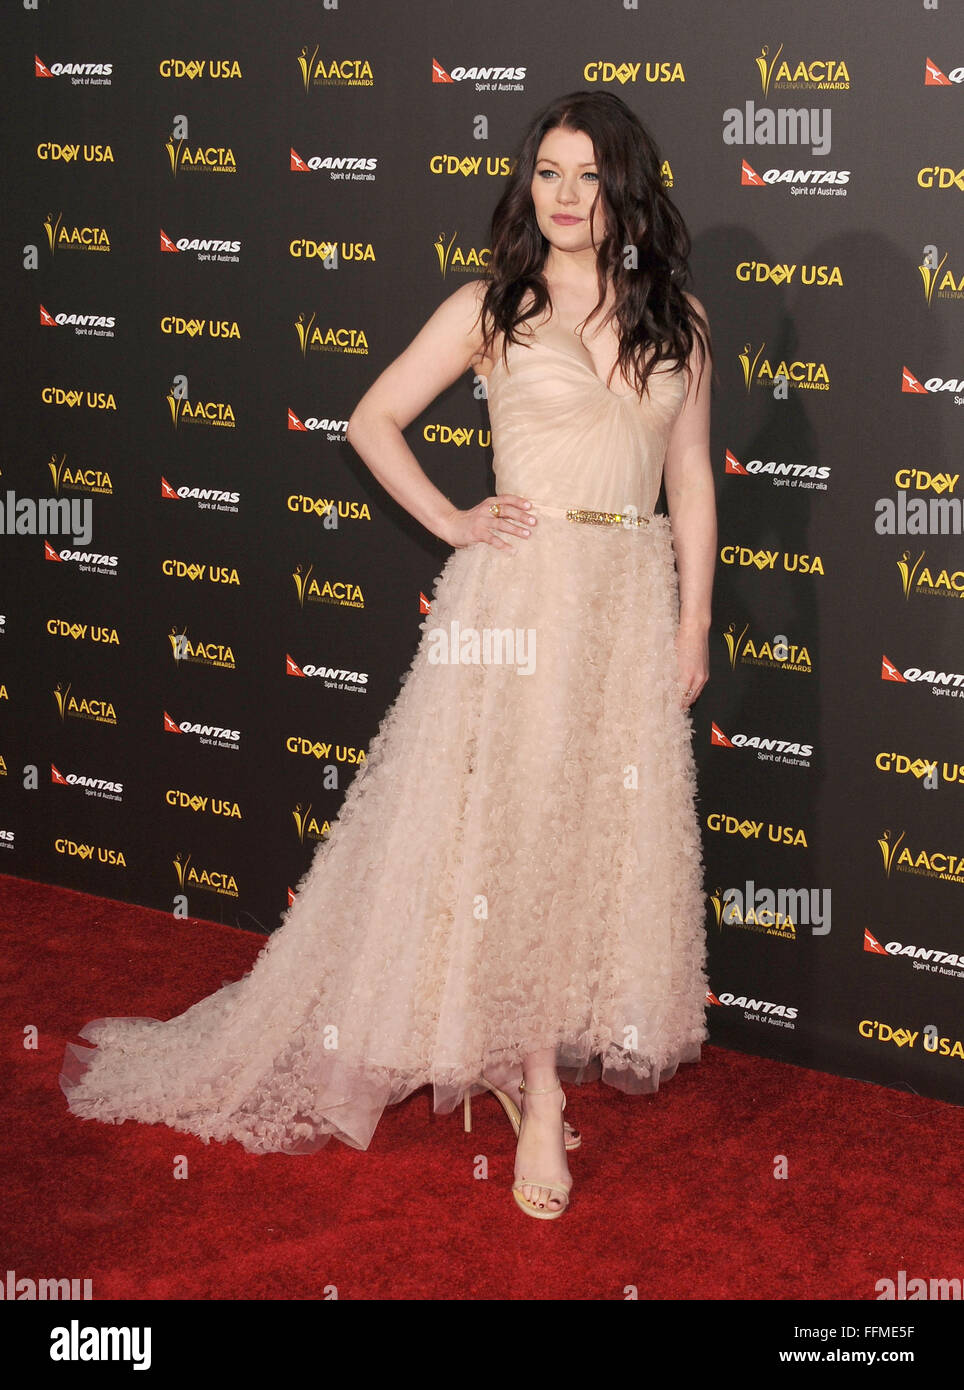 5f21741666c Actress Emilie De Ravin attends the 2015 G Day USA Gala featuring the AACTA  International